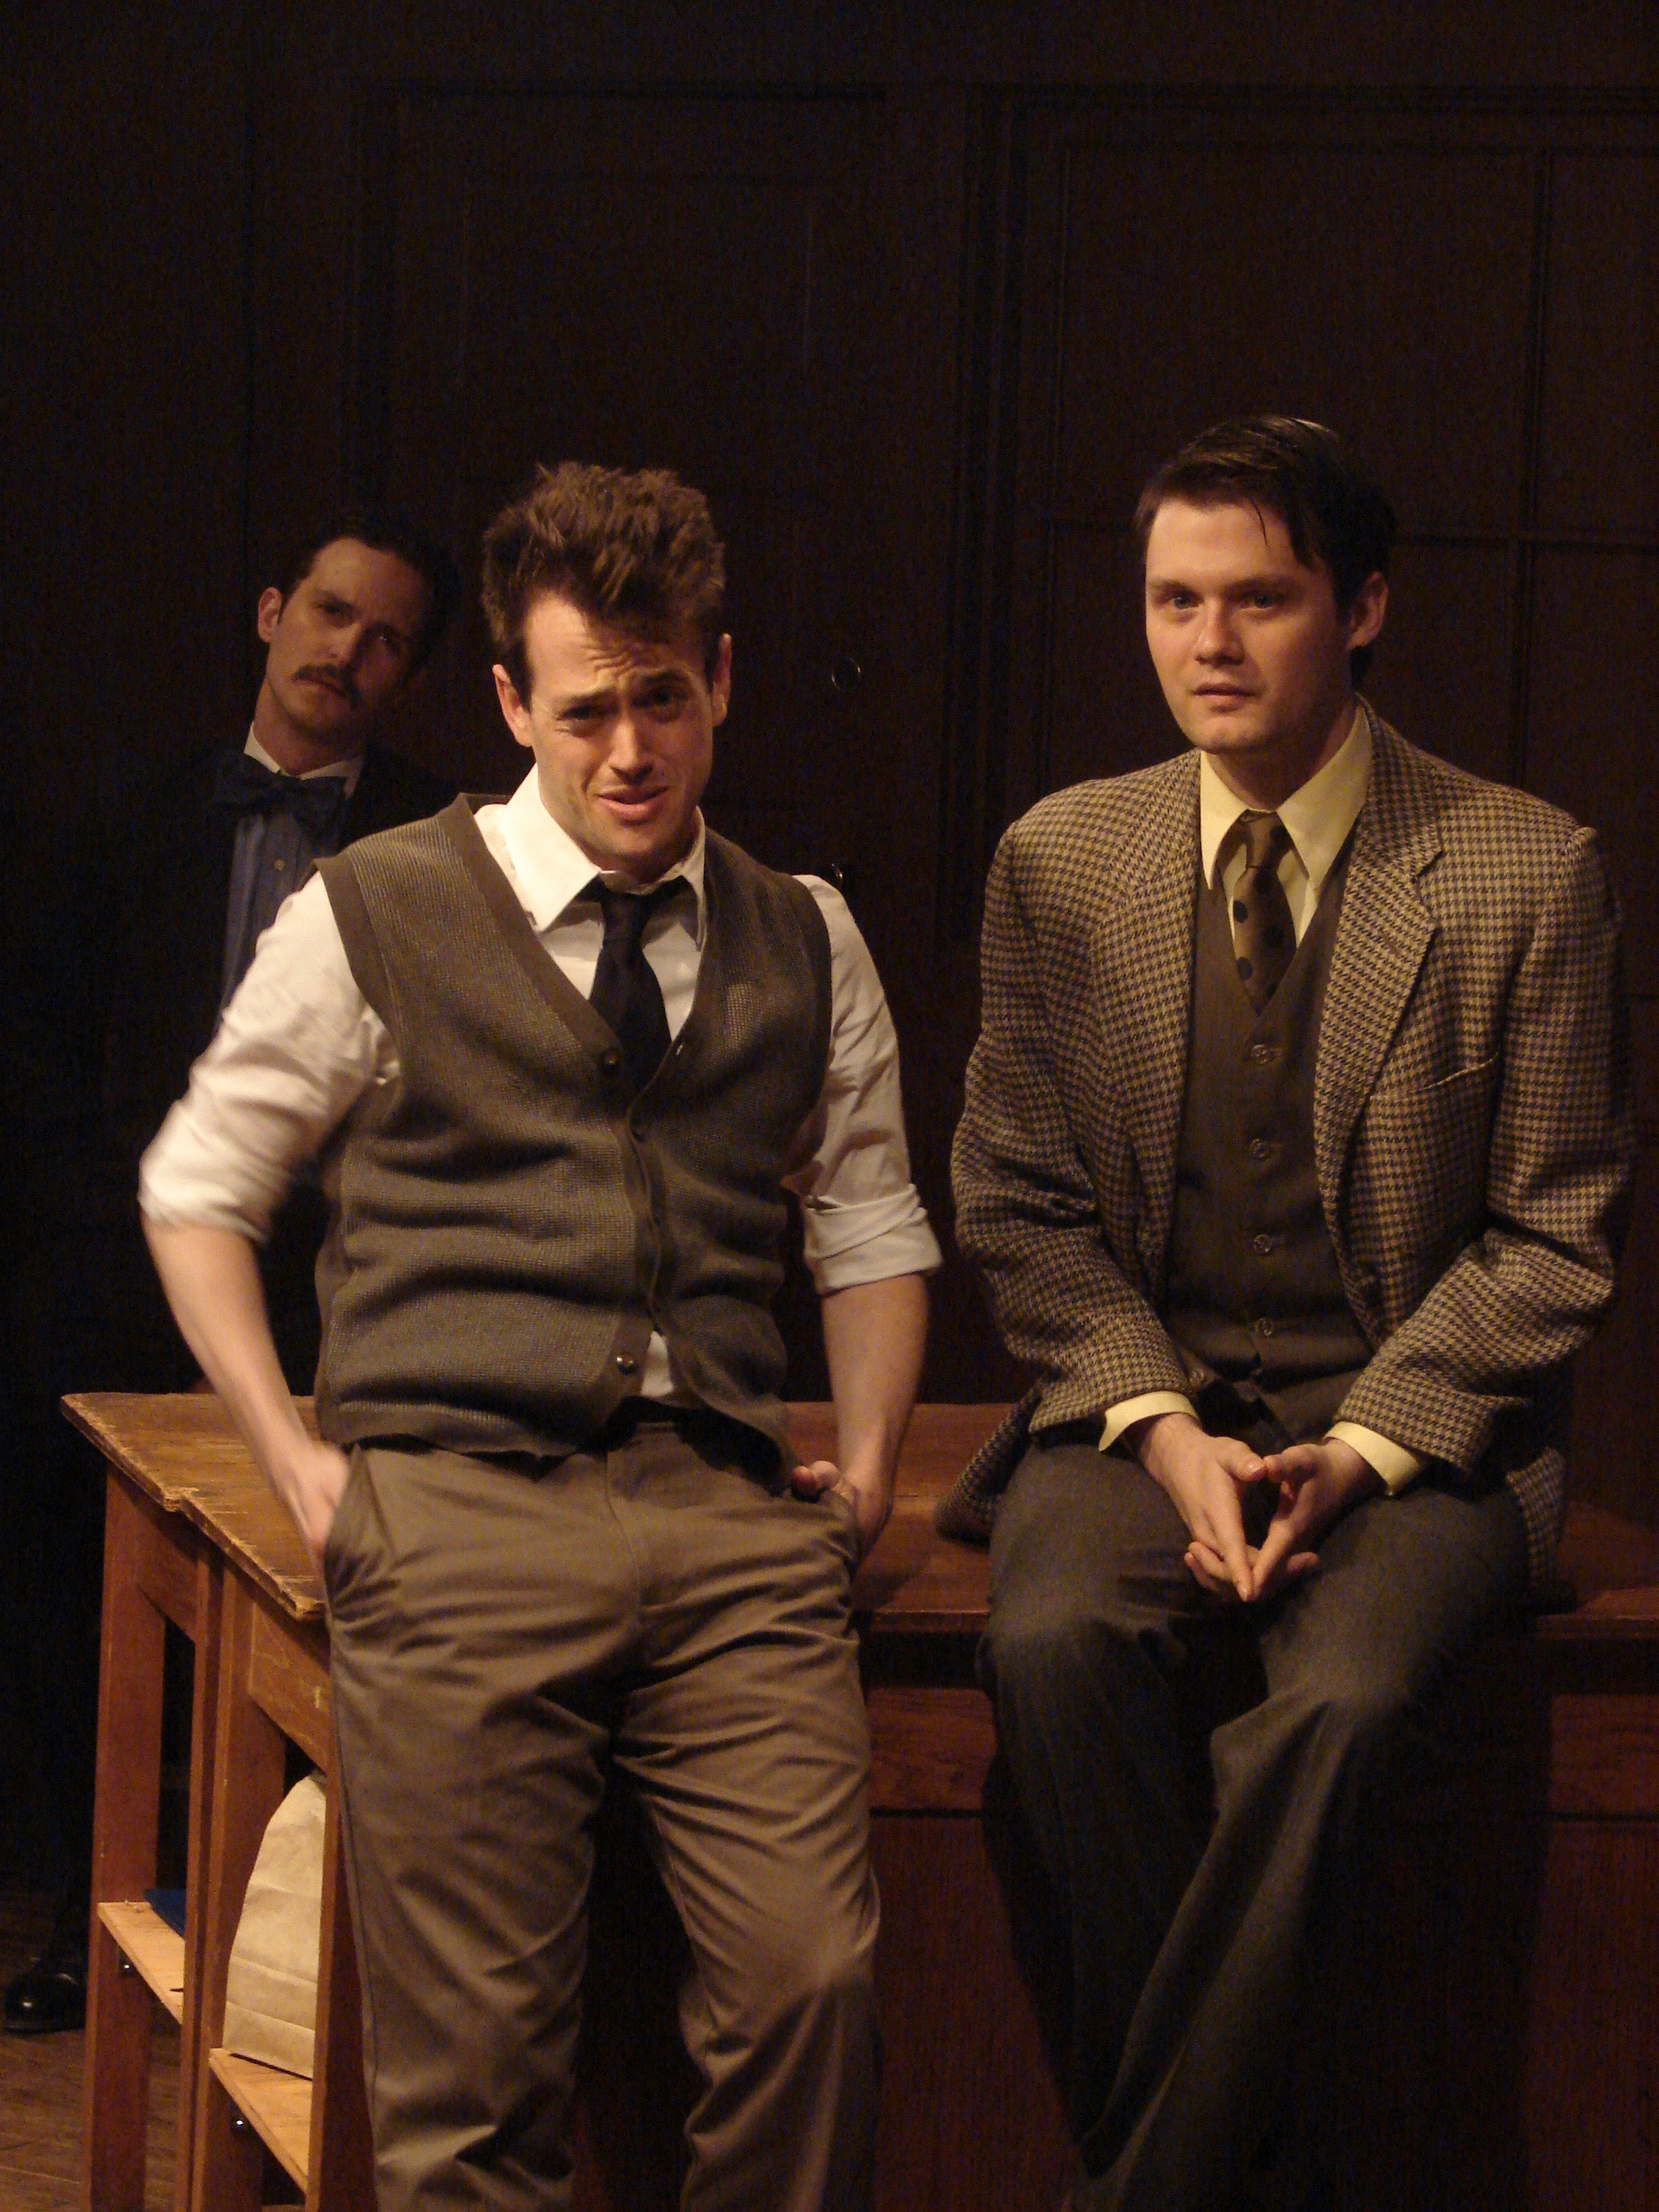 Andrew Lund as James Watson, Conor Burke as Francis Crick